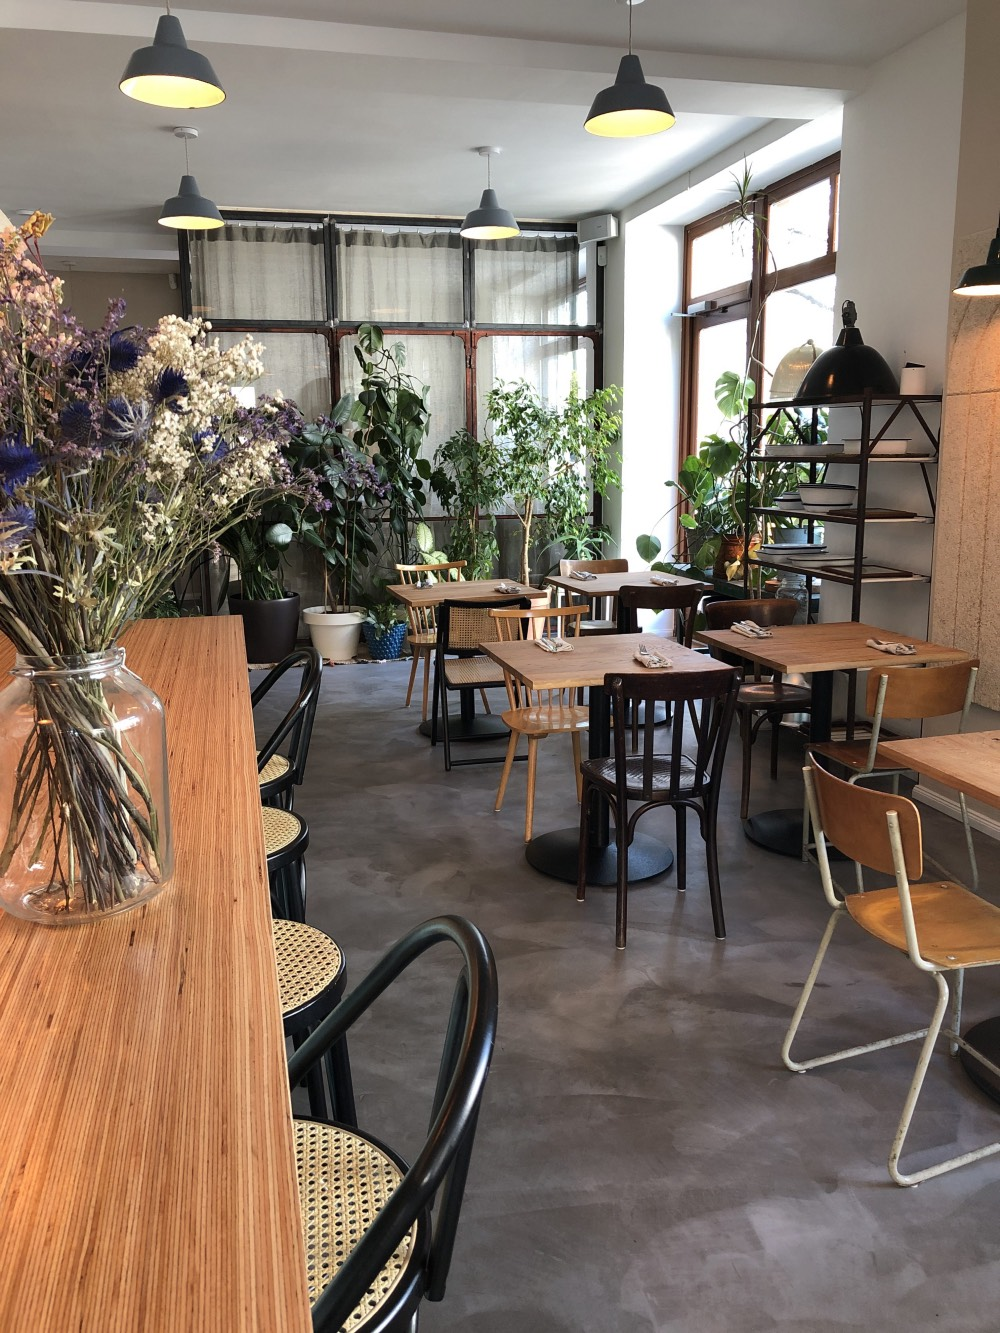 frea-restaurace-zero-waste-vegan-berlin